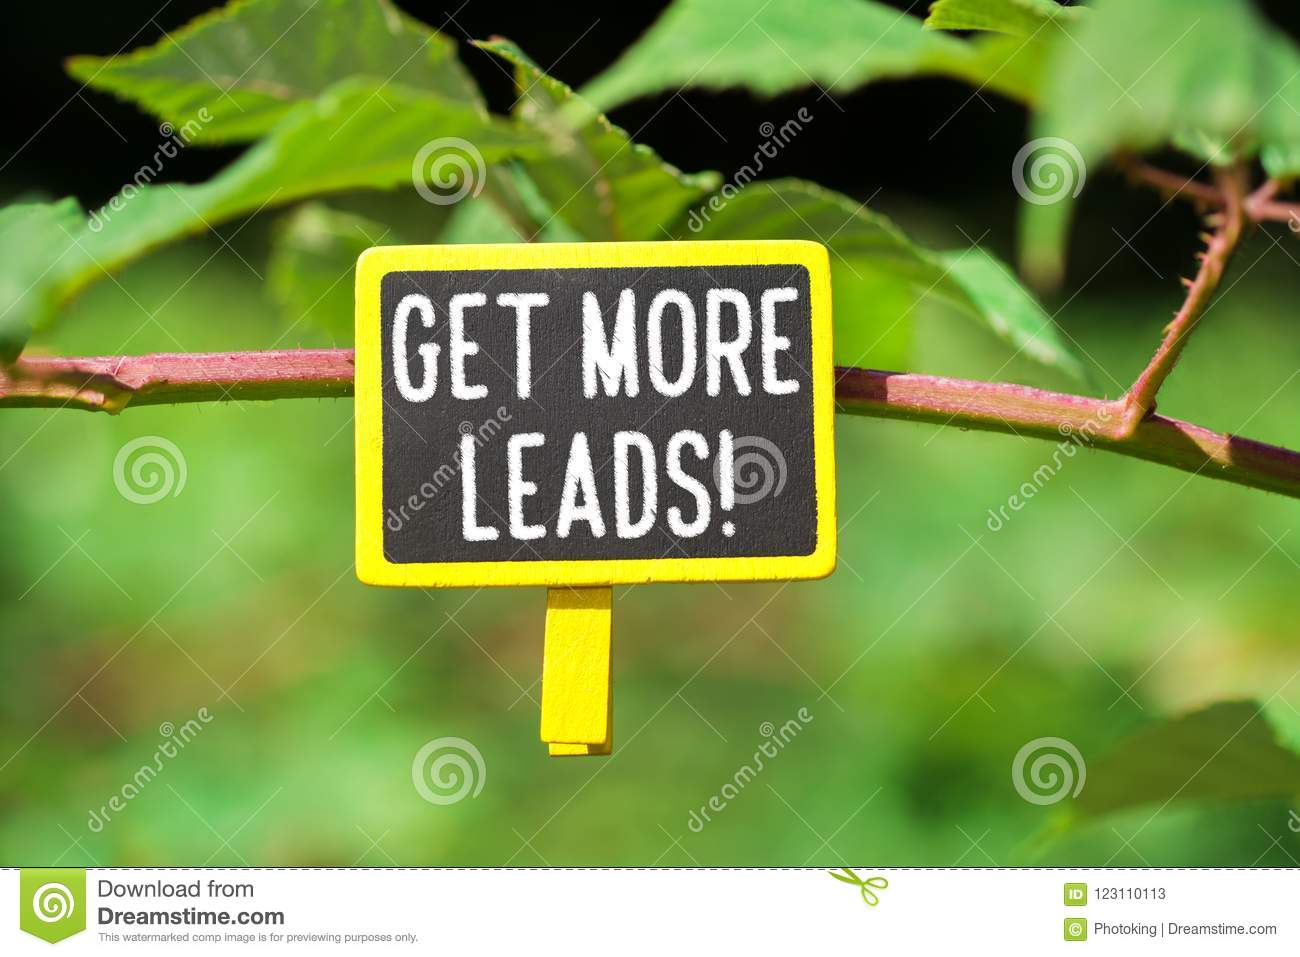 Get more leads text on board